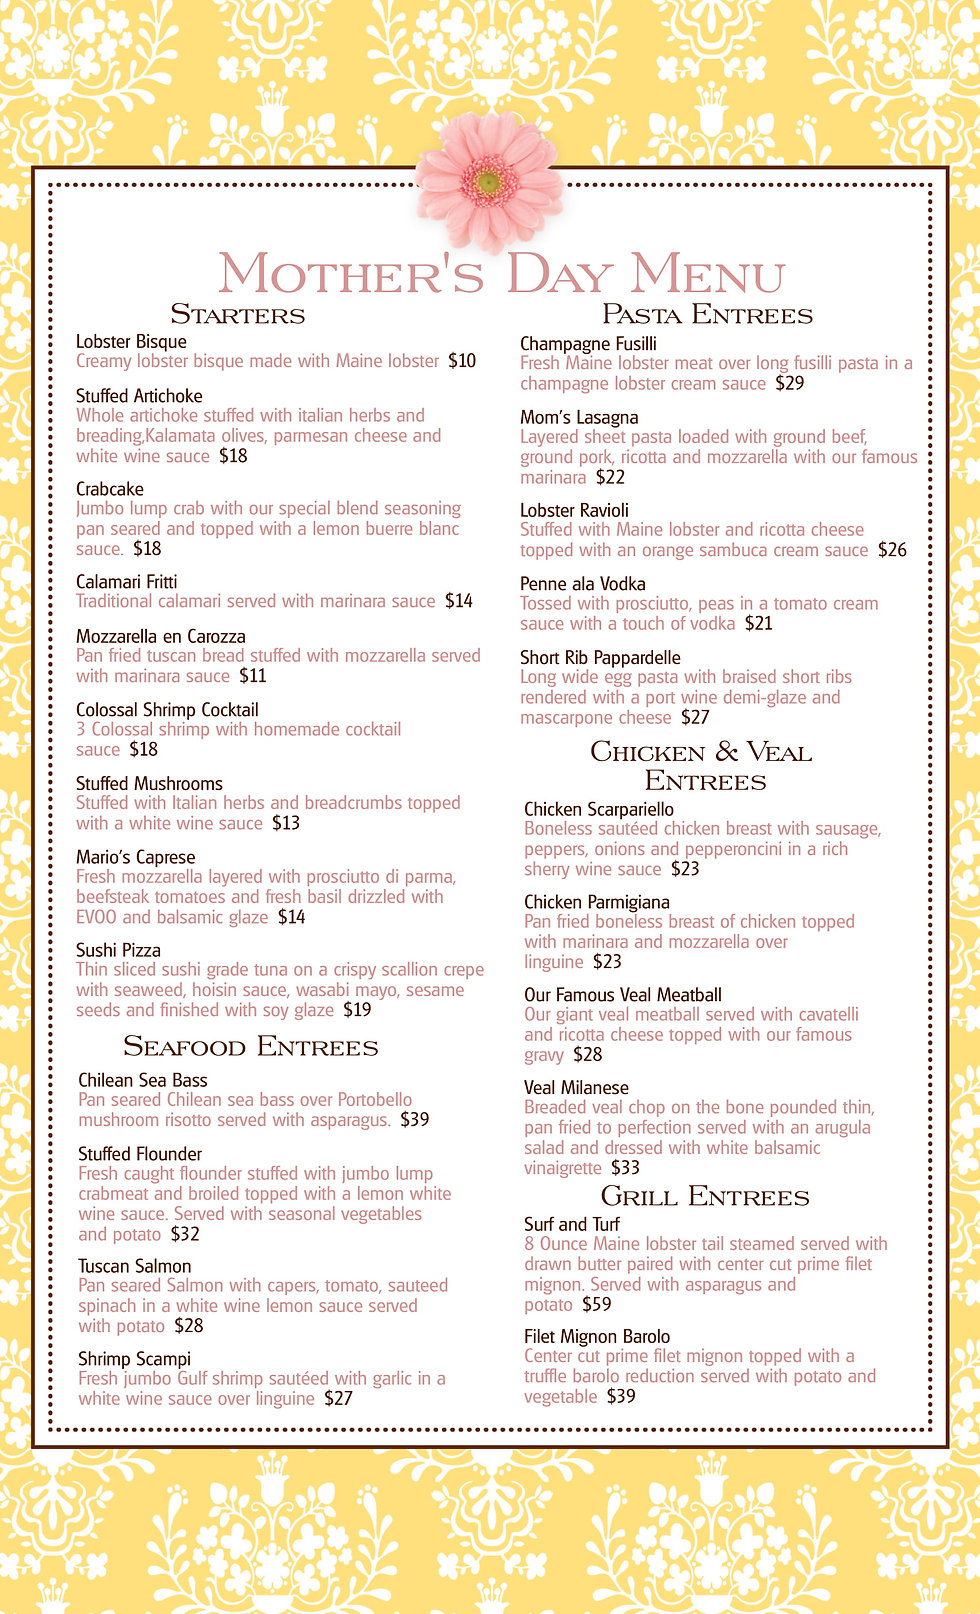 Mothers Day May Menu (2) (8)-1.jpg